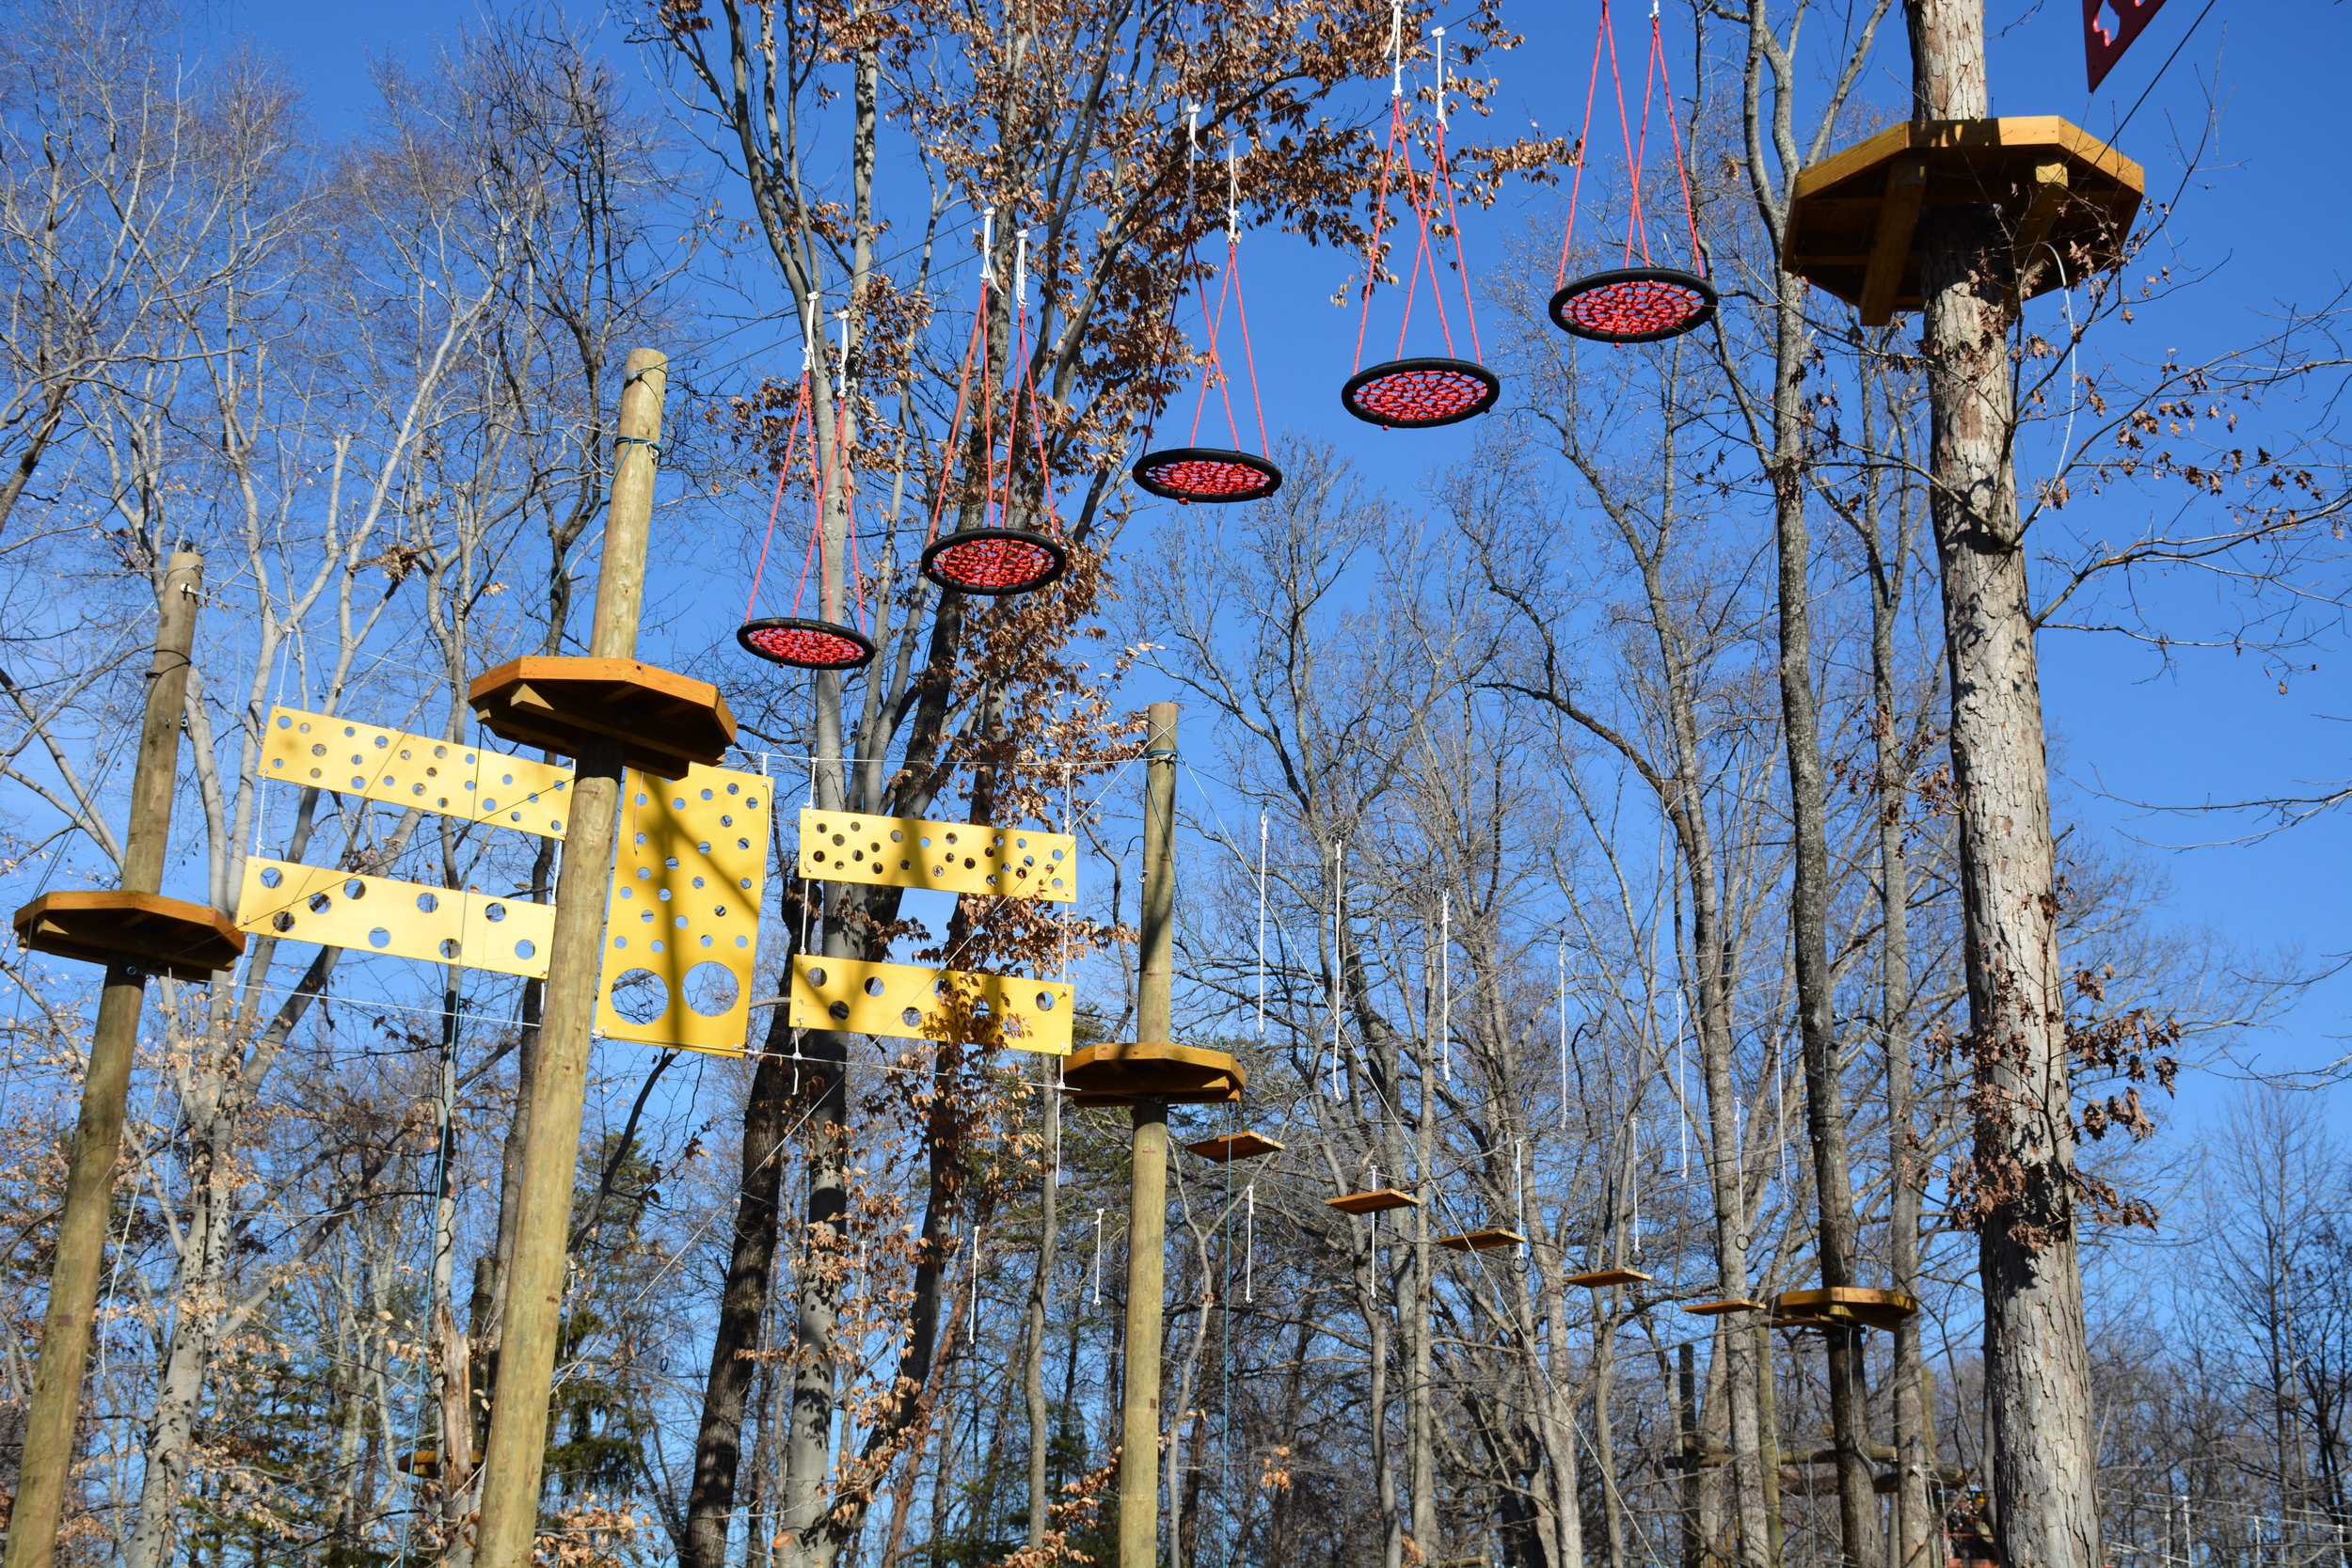 Greensboro Science Center's new Sky Wild treetop adventure course. Image credit: Greensboro Science Center.